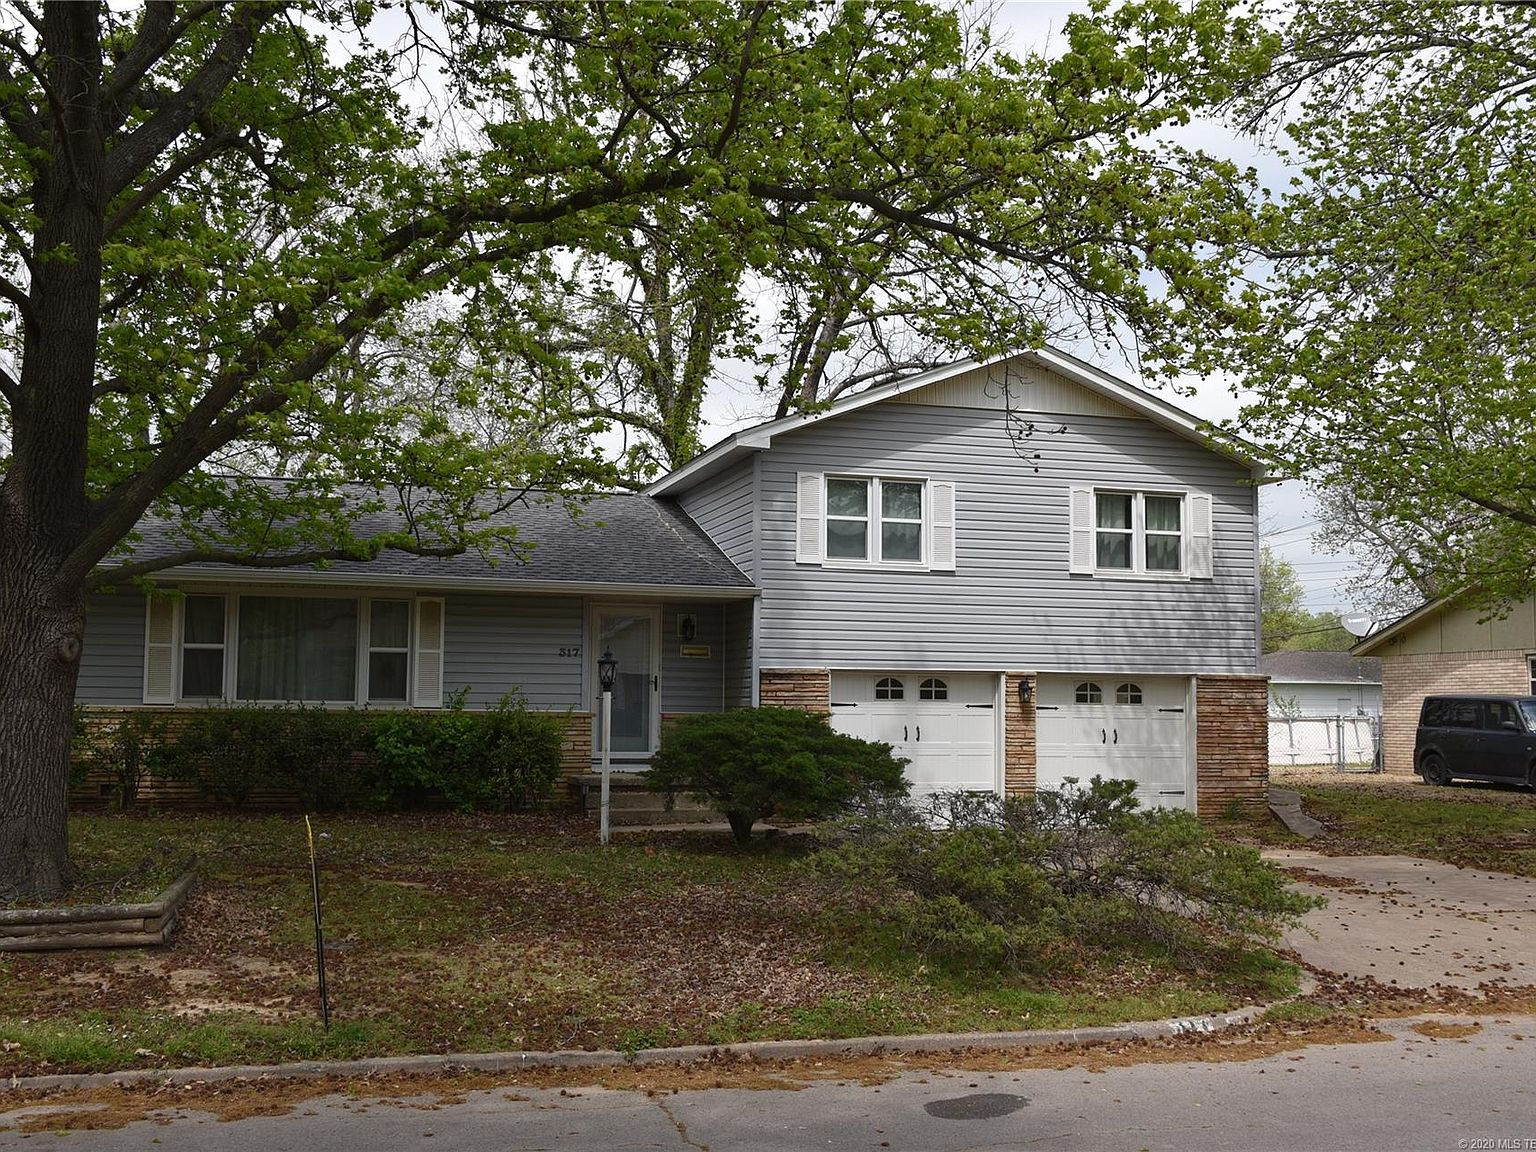 317 Se 15th St Pryor Ok 74361 Zillow